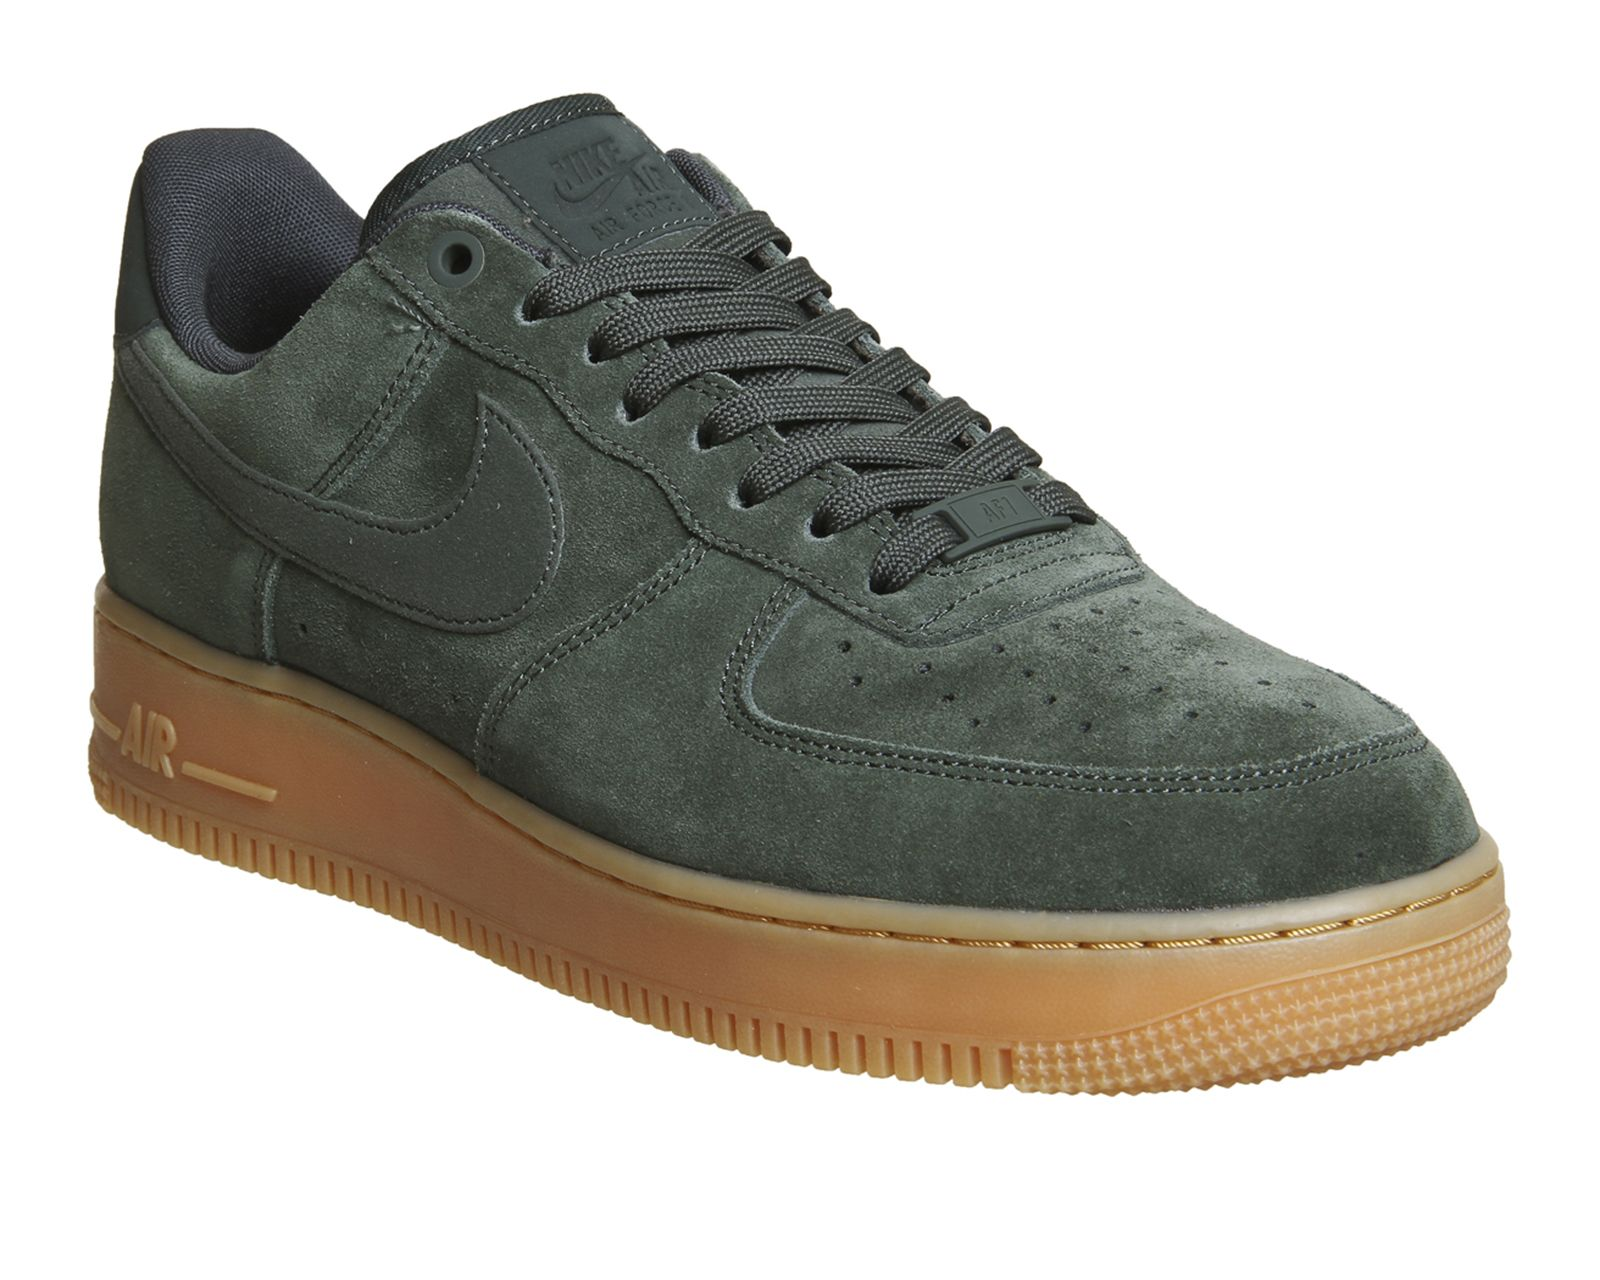 Nike Air Force 1 Lv8 Outdoor Green Suede Gum Trainers  e068d74d6